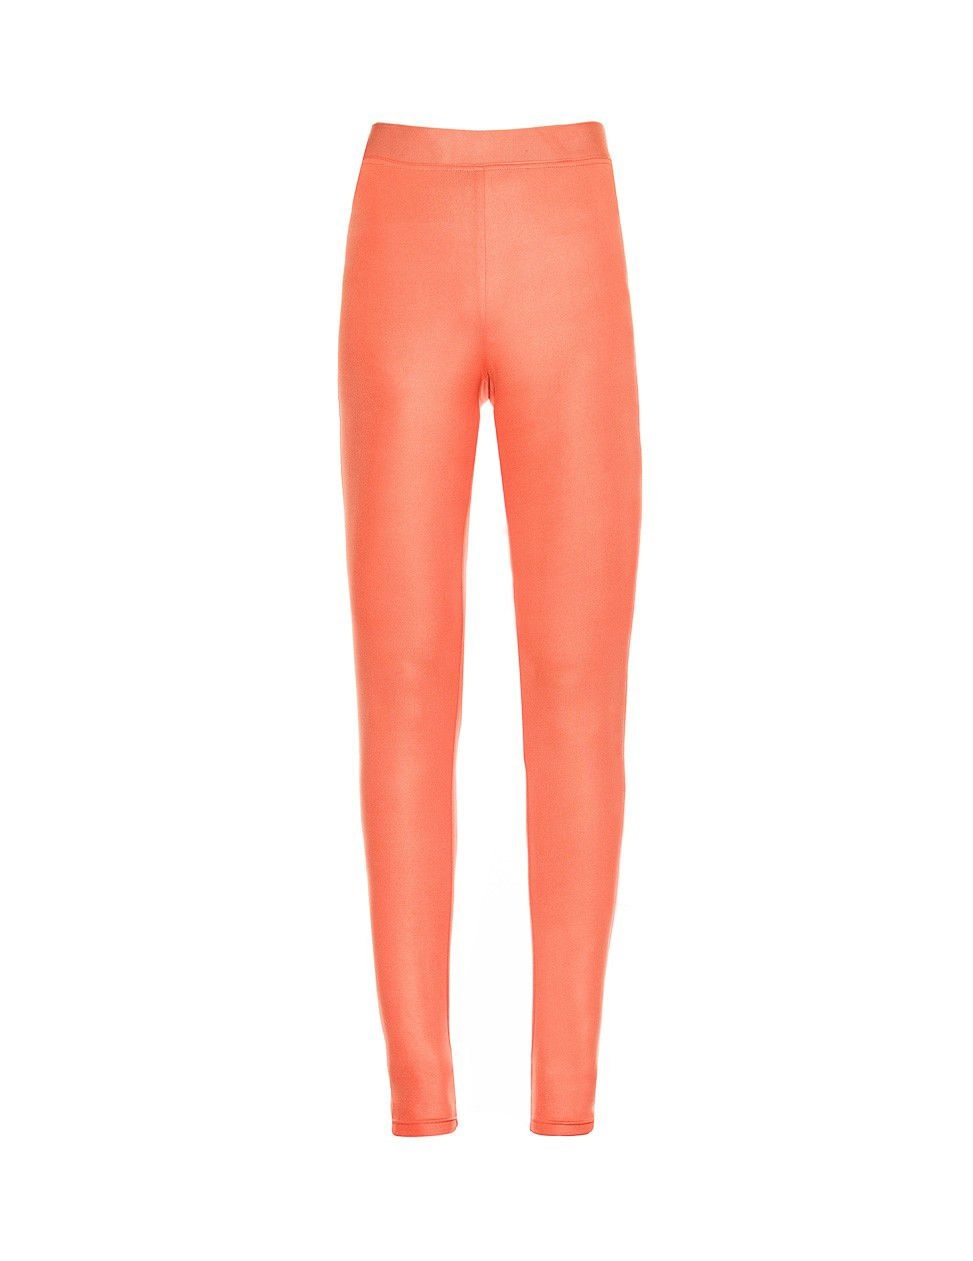 Gola Stretch Leggings